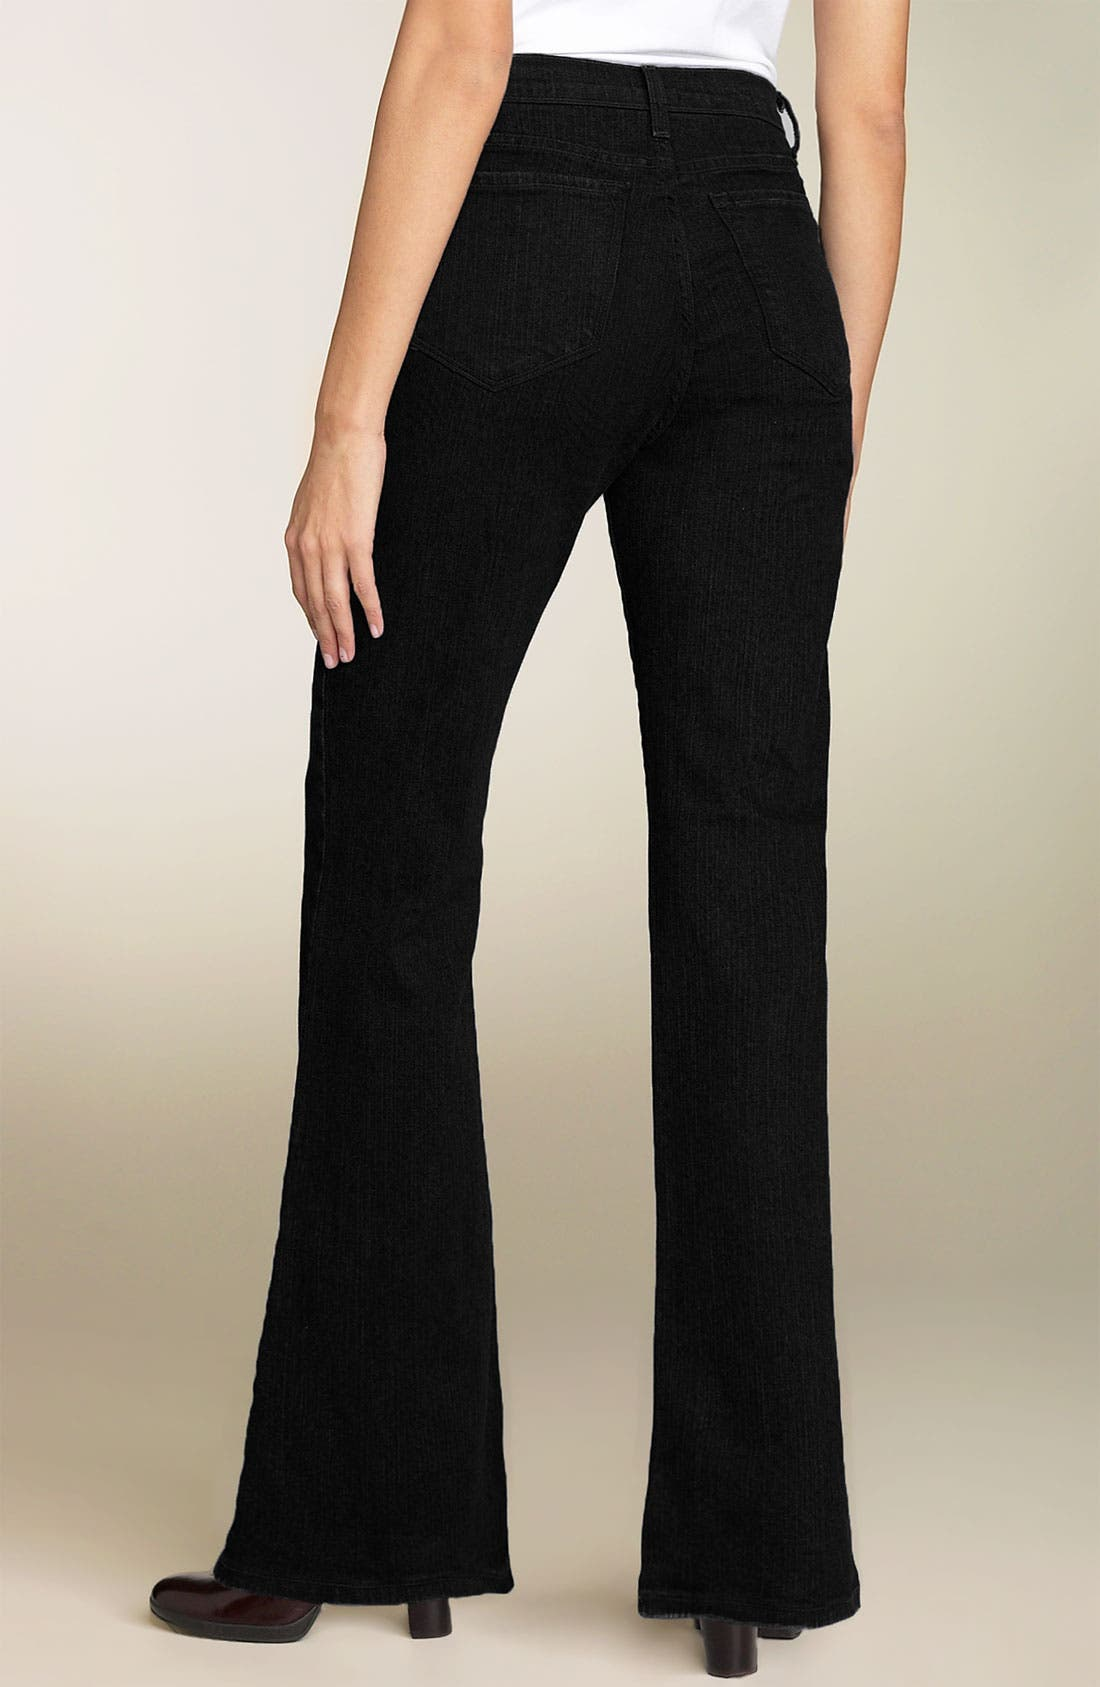 Alternate Image 2  - NYDJ 'Sarah' Stretch Bootcut Jeans (Black) (Long)